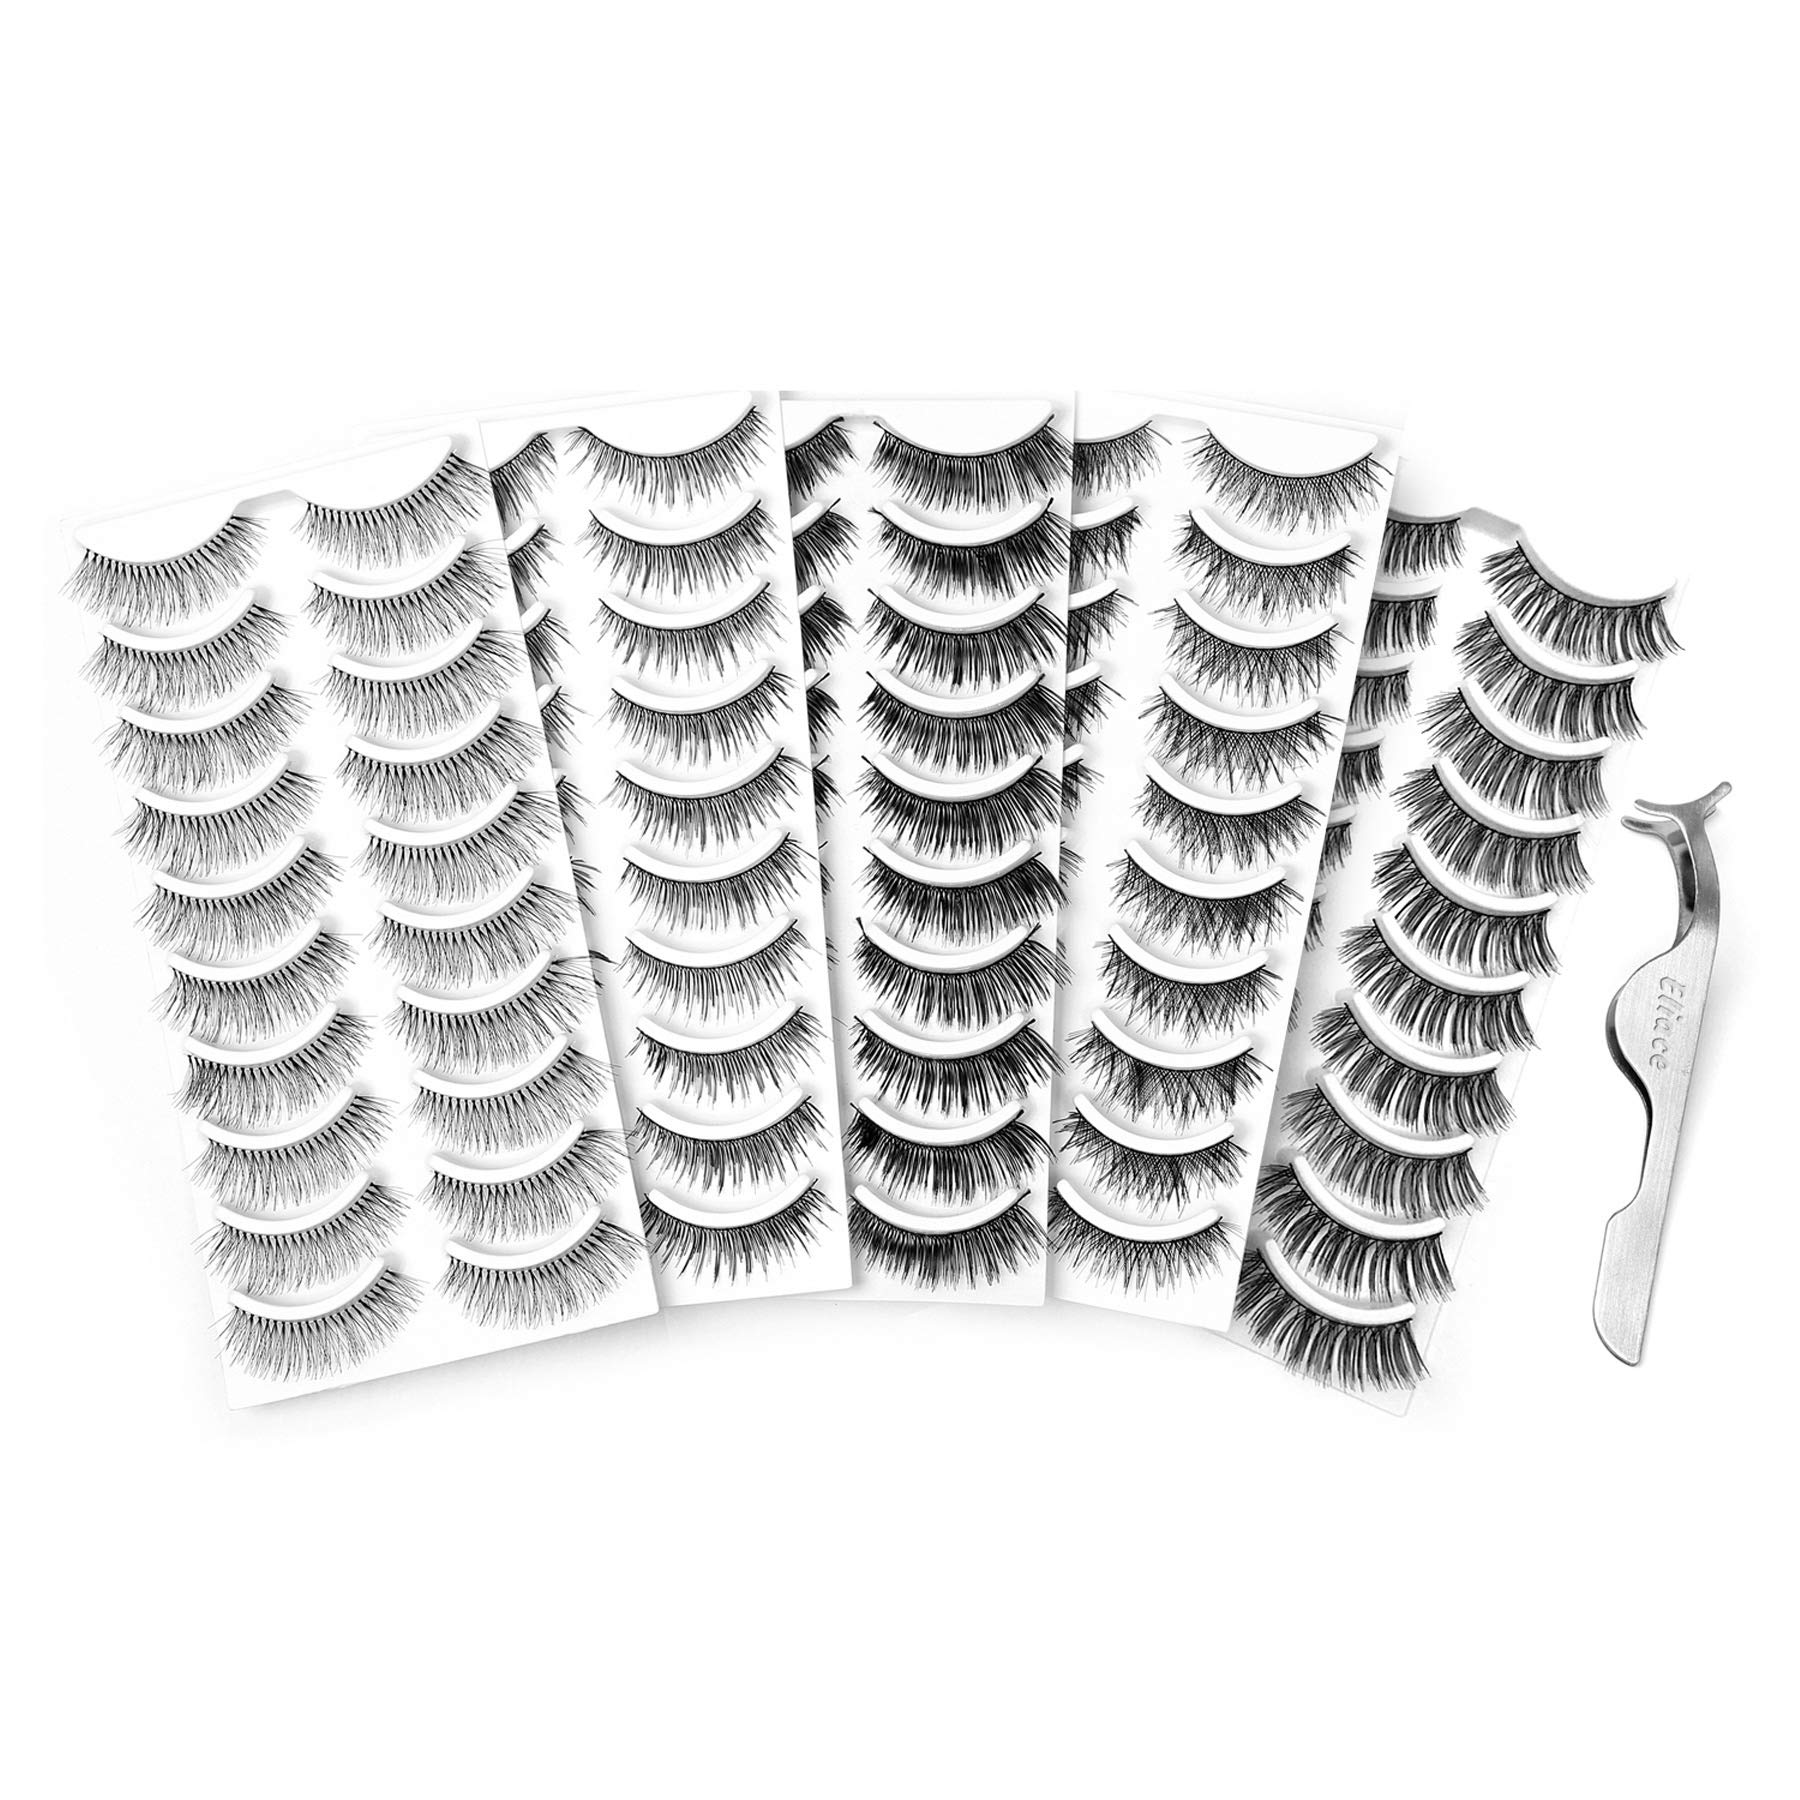 Amazon.com : Bememo 6 Pieces Tweezers Kit for Eyelashes ...